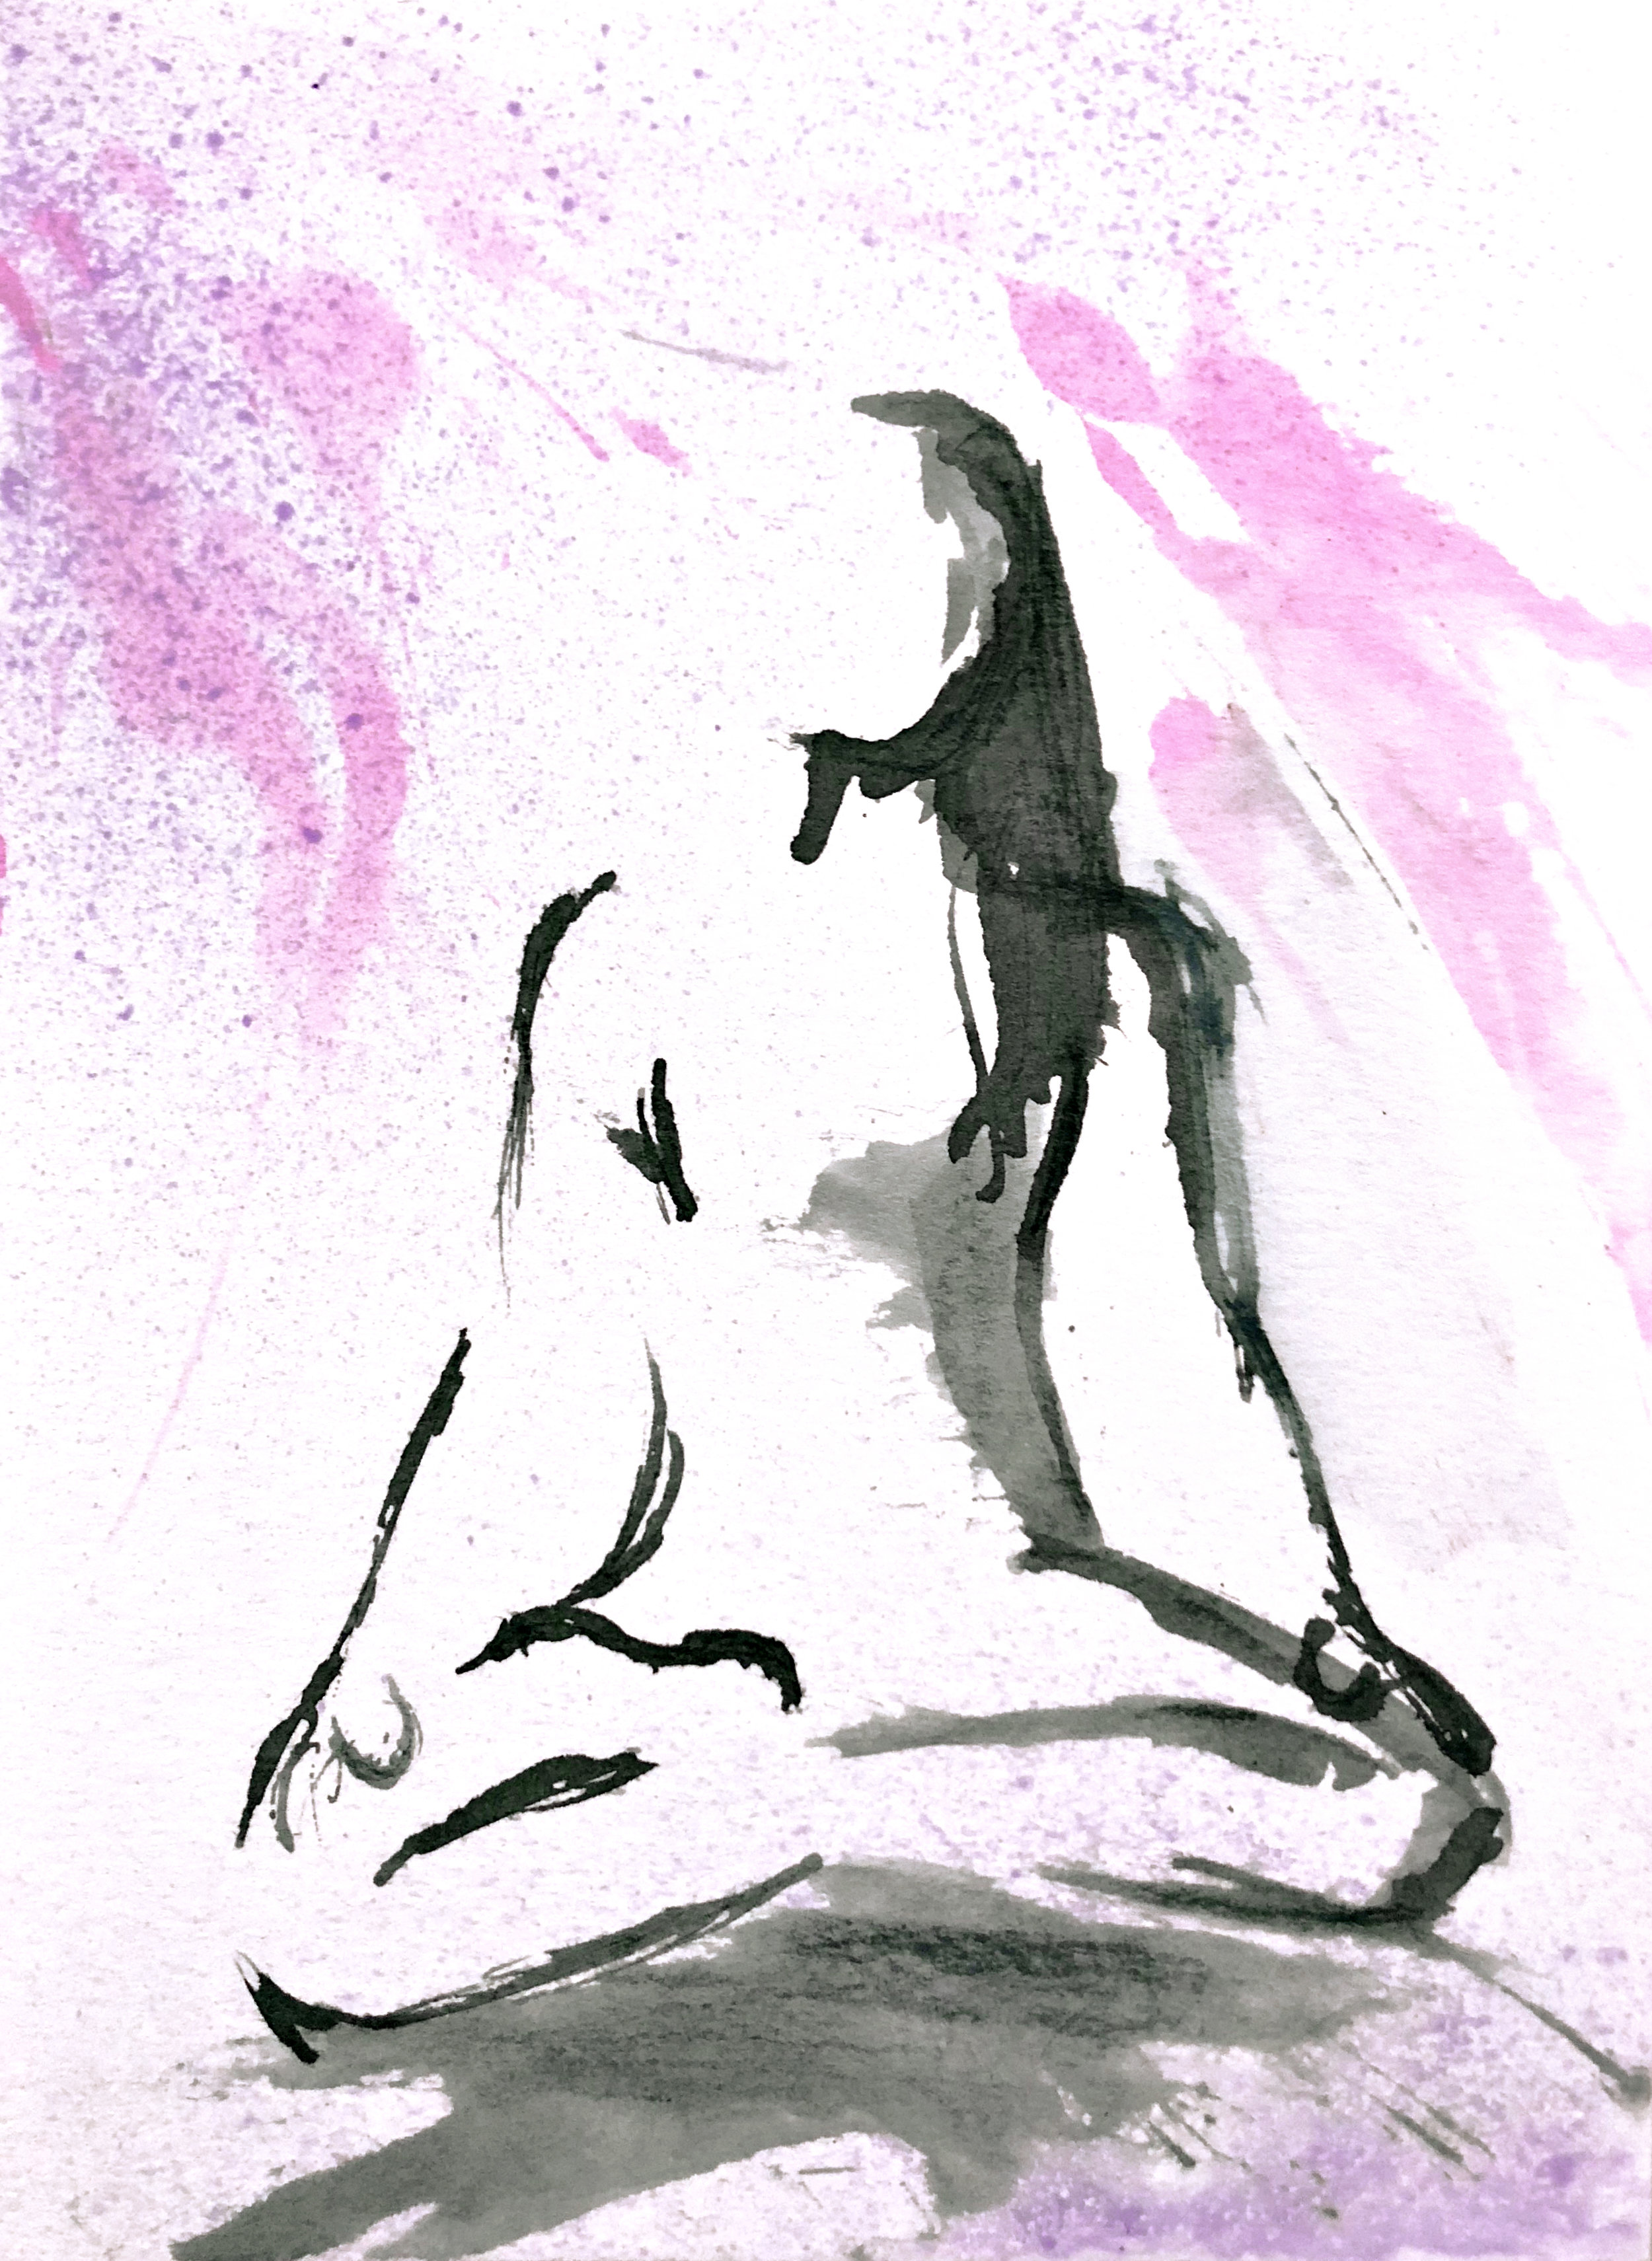 Watercolor on paper, painted with palette knives, yoga pose lotus pose or padmasana.